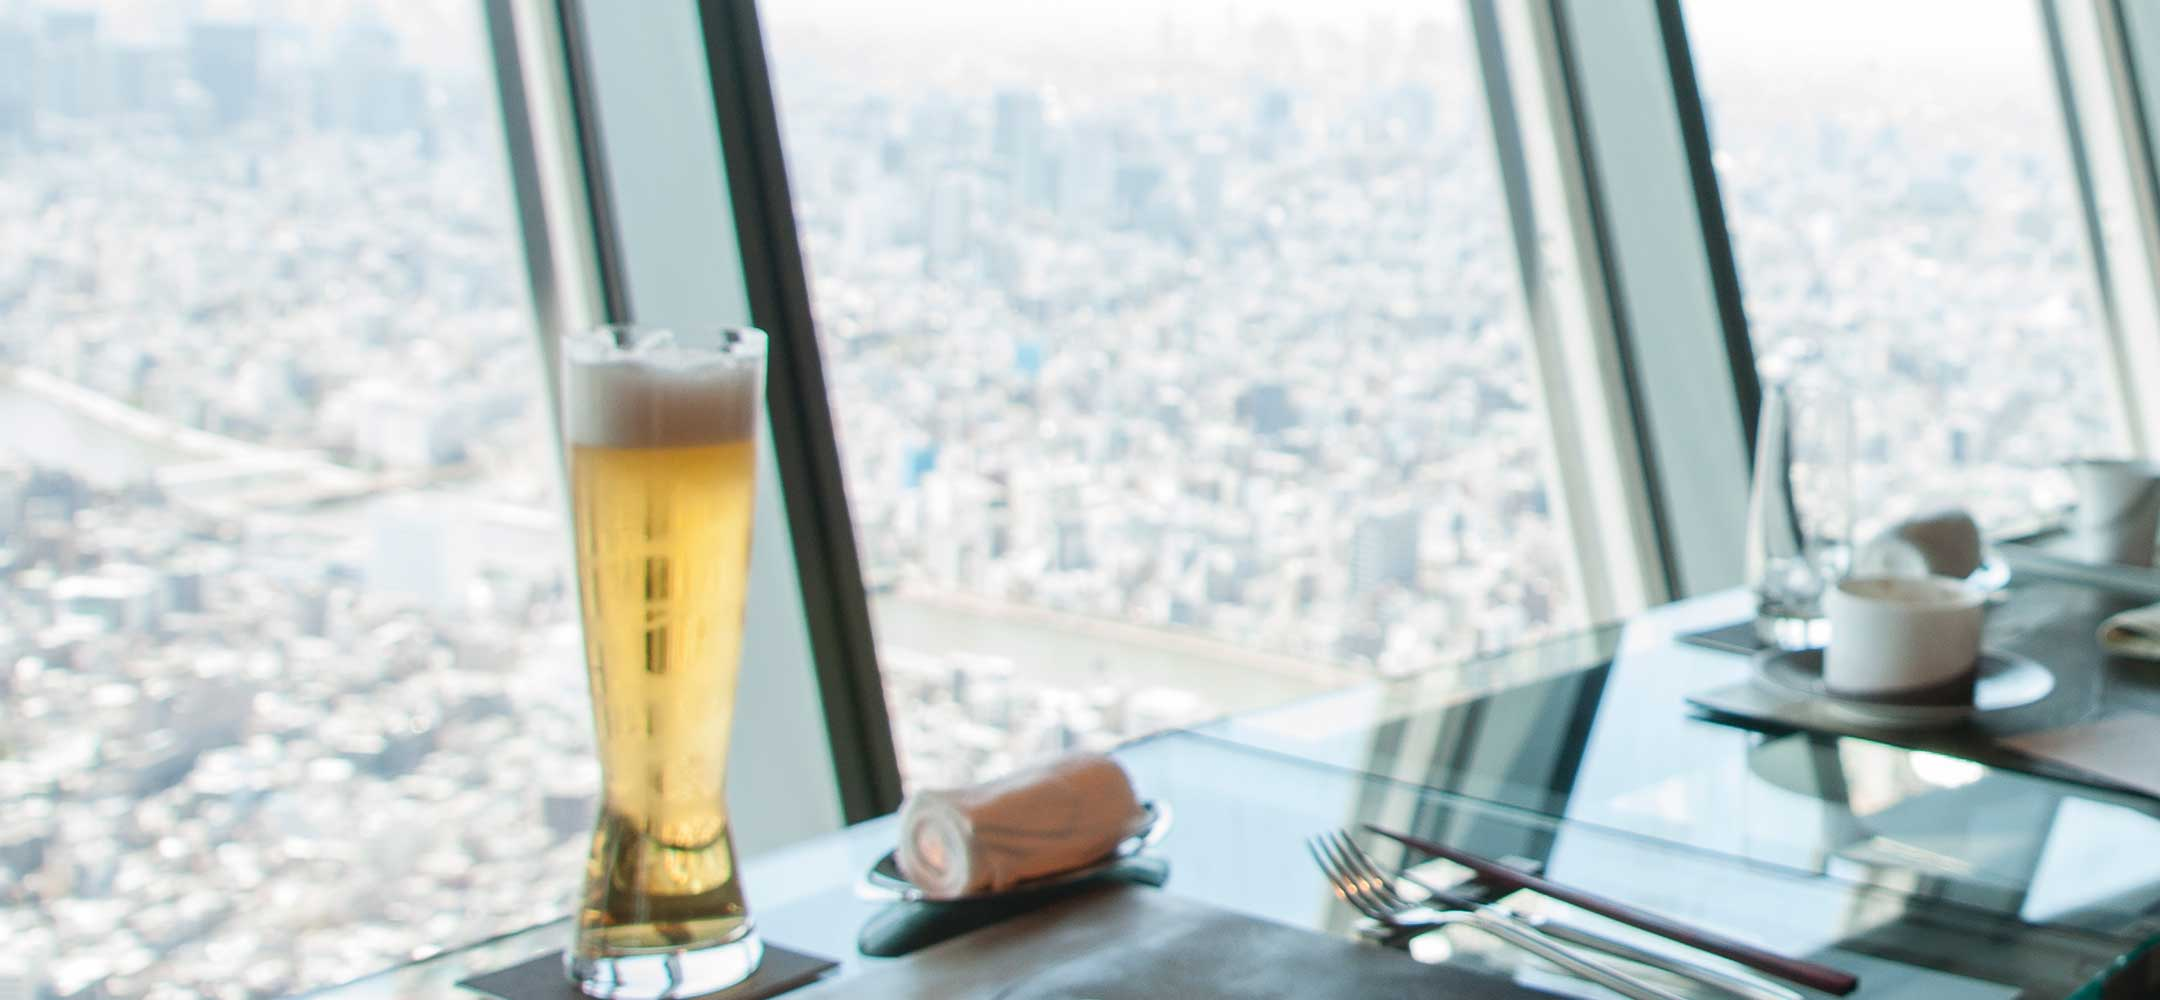 Lunch at the Tokyo Skytree